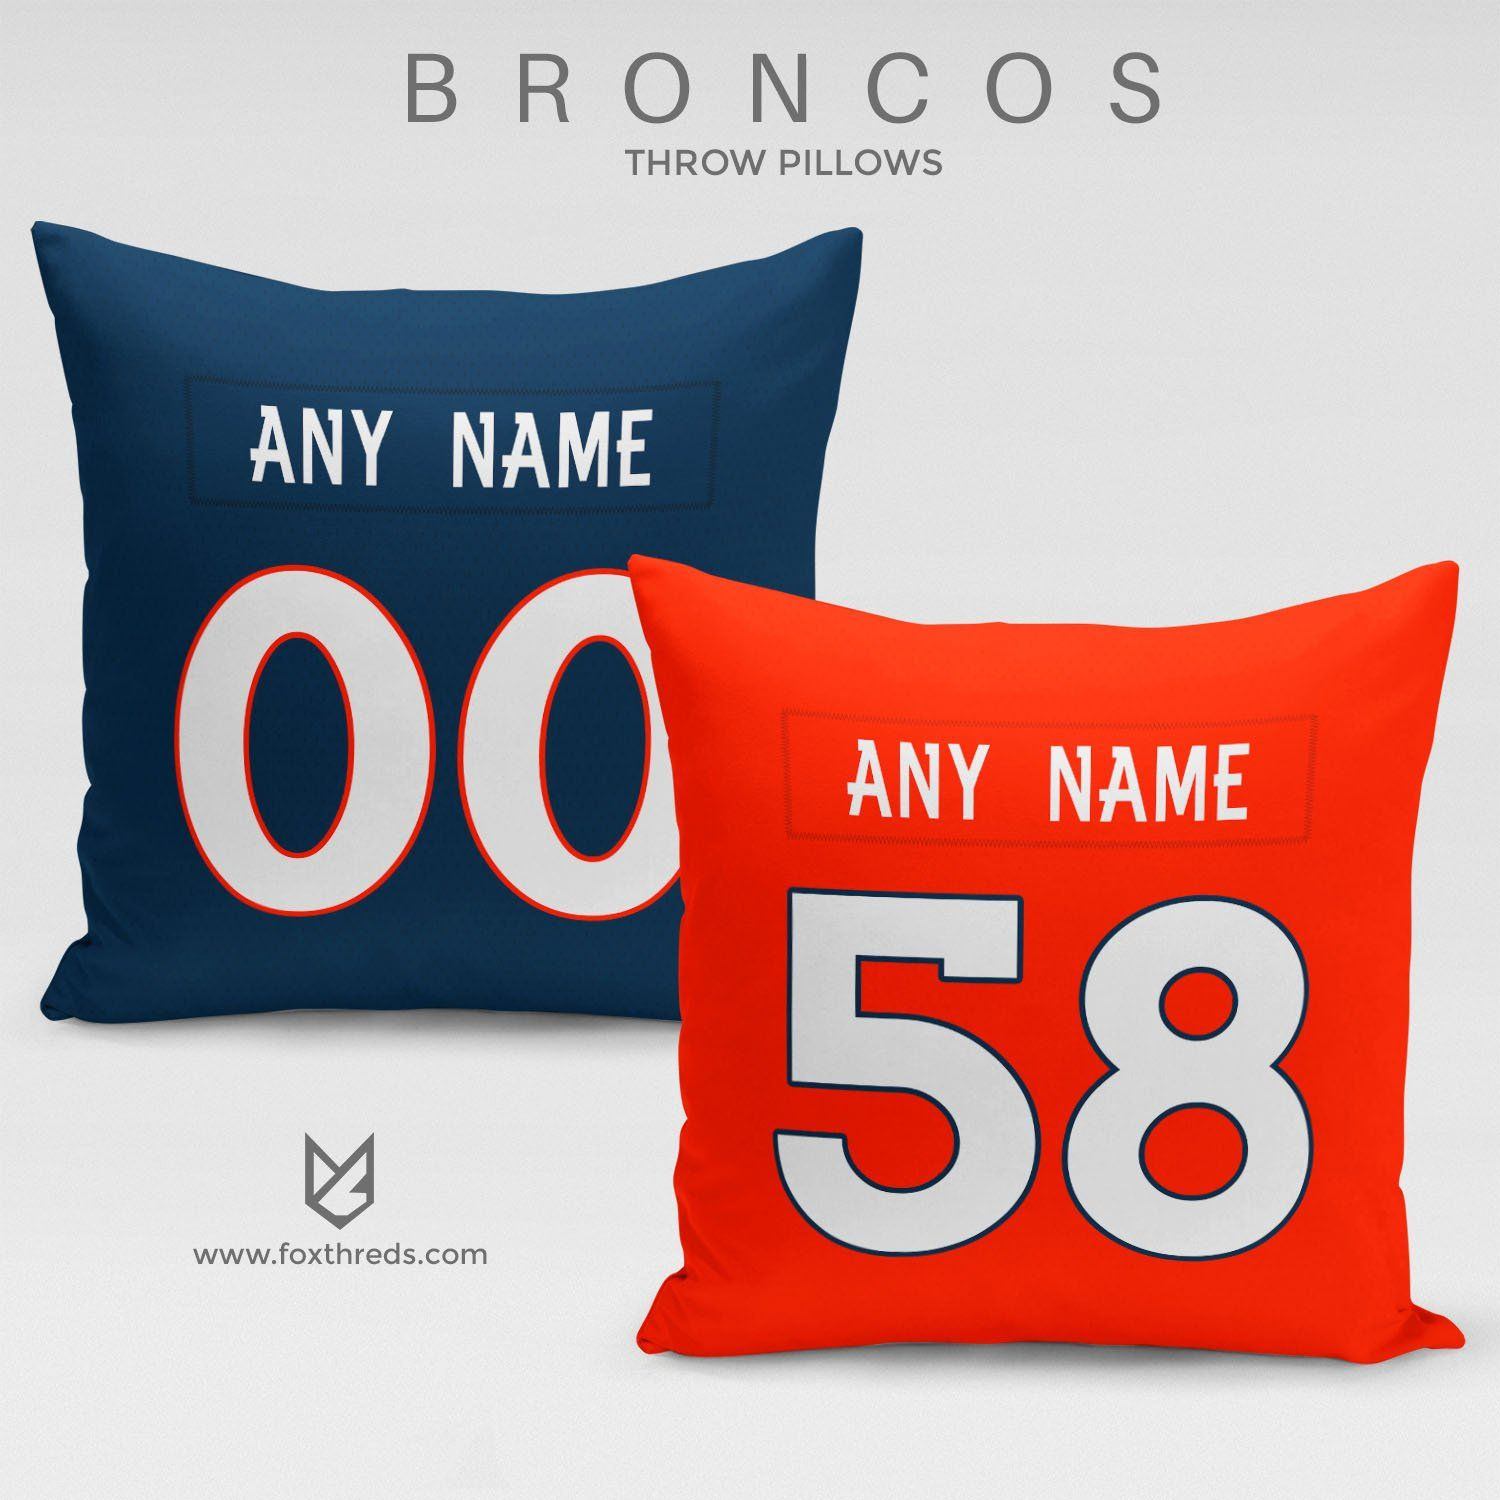 c0c21507d DENVER BRONCOS PILLOW FRONT AND BACK - PERSONALIZED SELECT ANY NAME   ANY  NUMBER